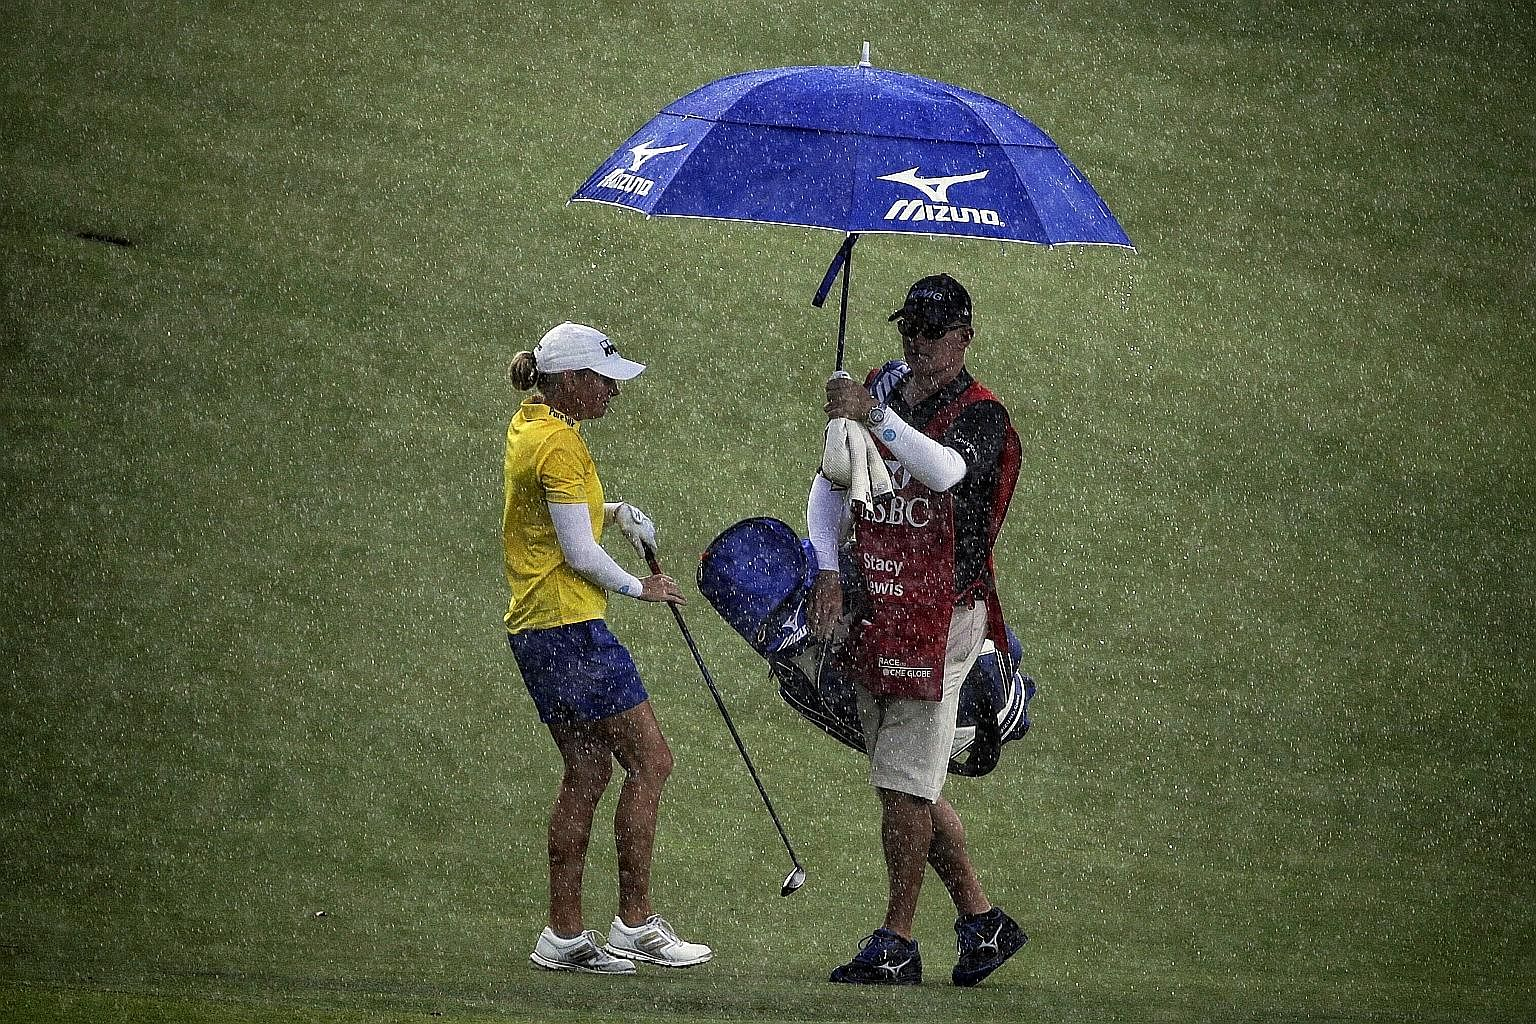 American Stacy Lewis battling the elements during the second round of the HSBC Women's Champions. The 2013 champion carded a one-over 73 yesterday, after a 68 on Thursday.